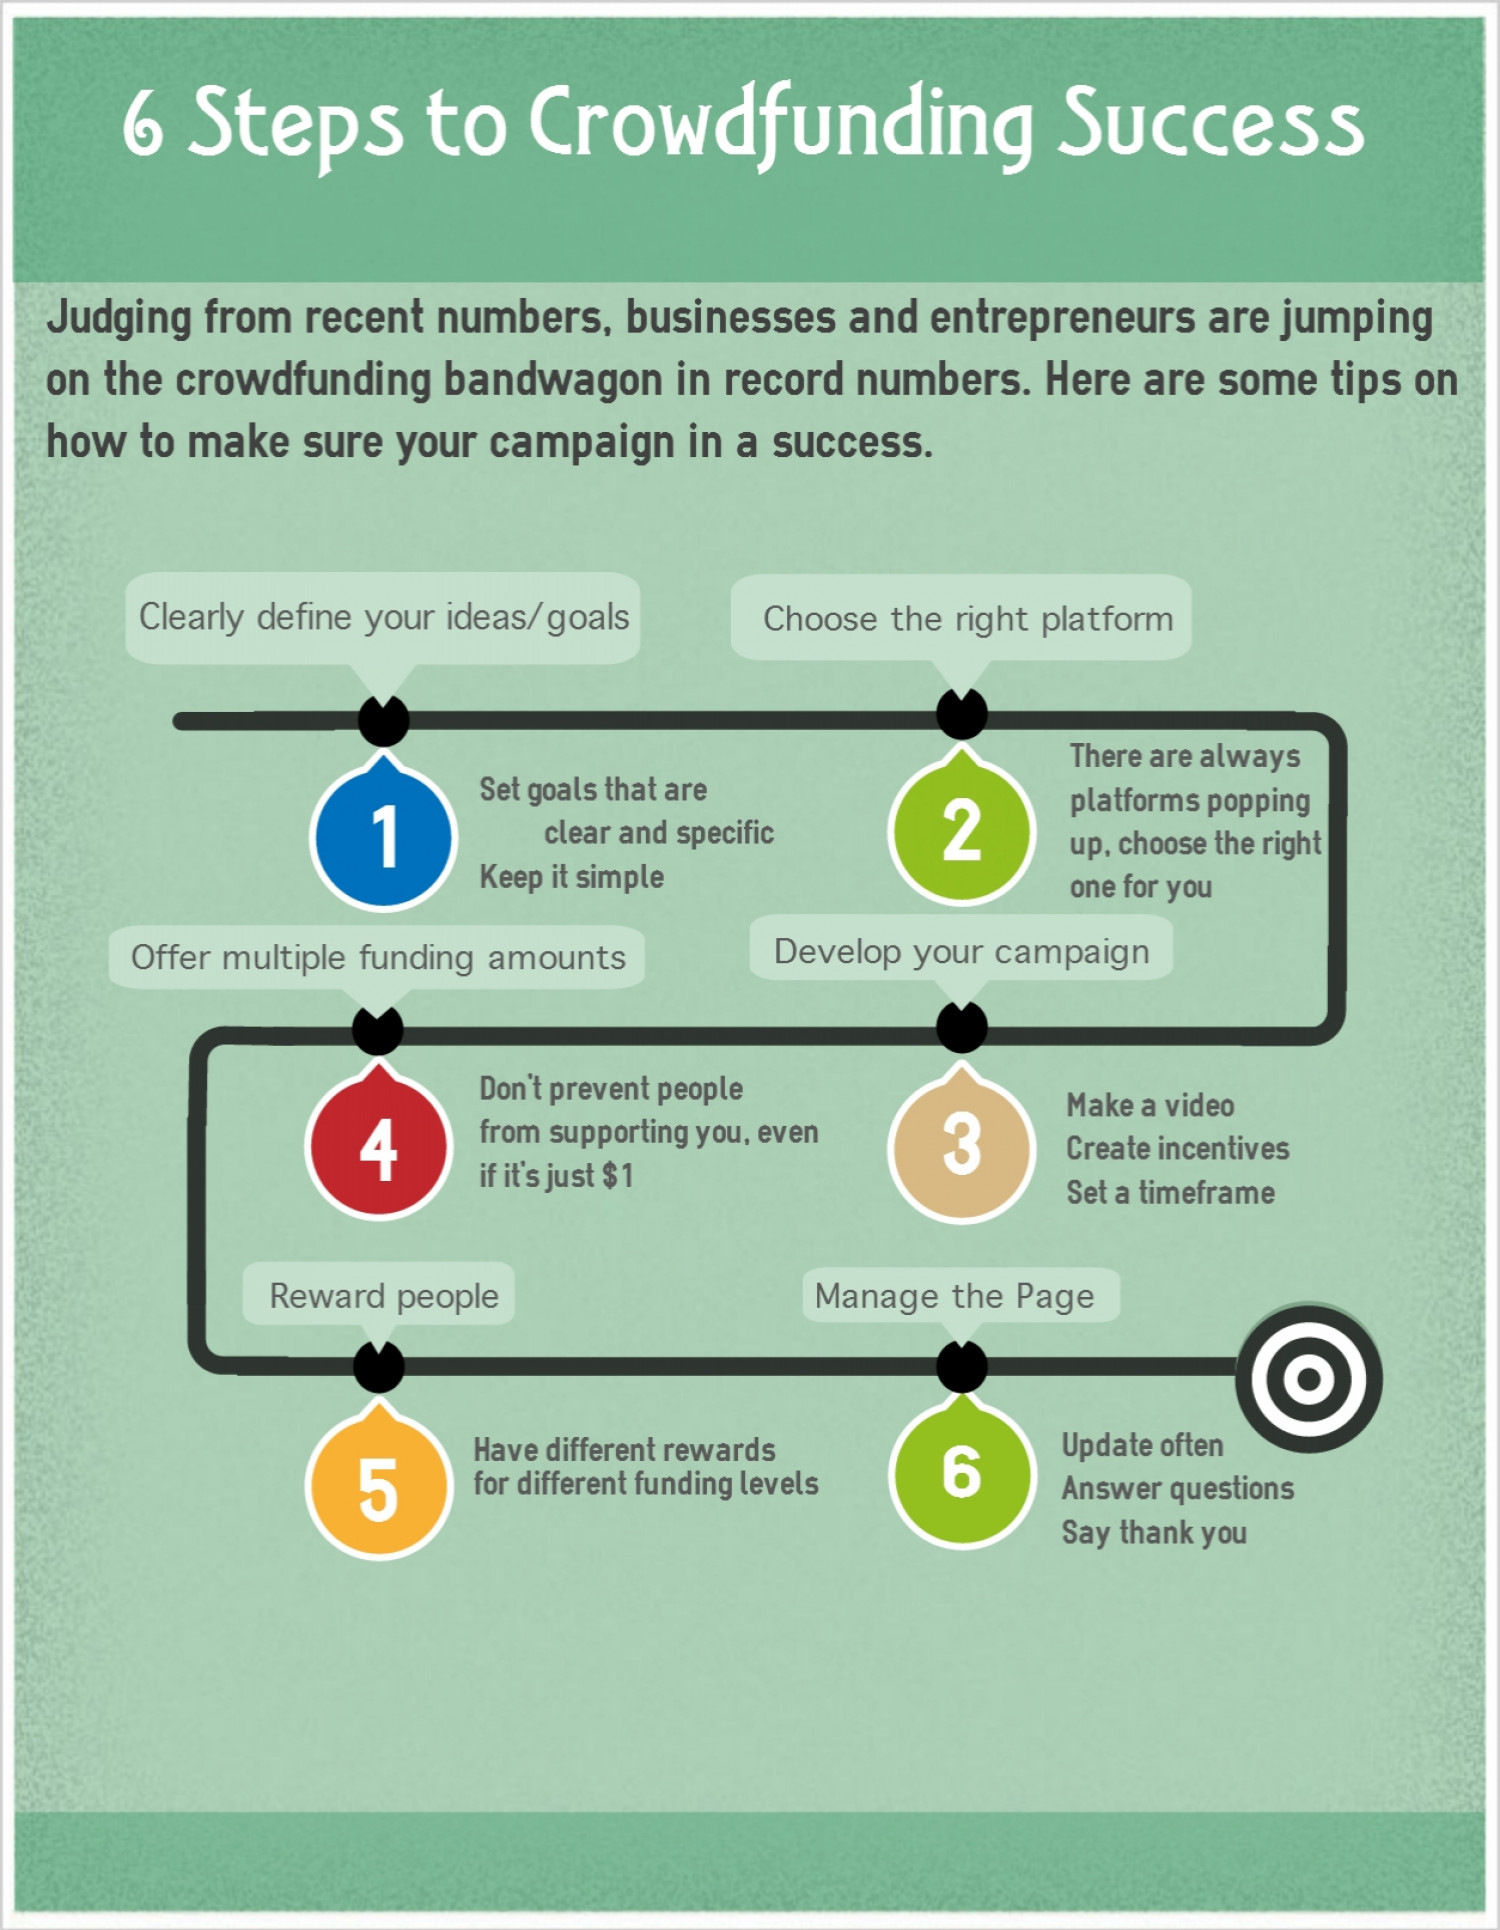 6 Steps to Crowdfunding Success Infographic